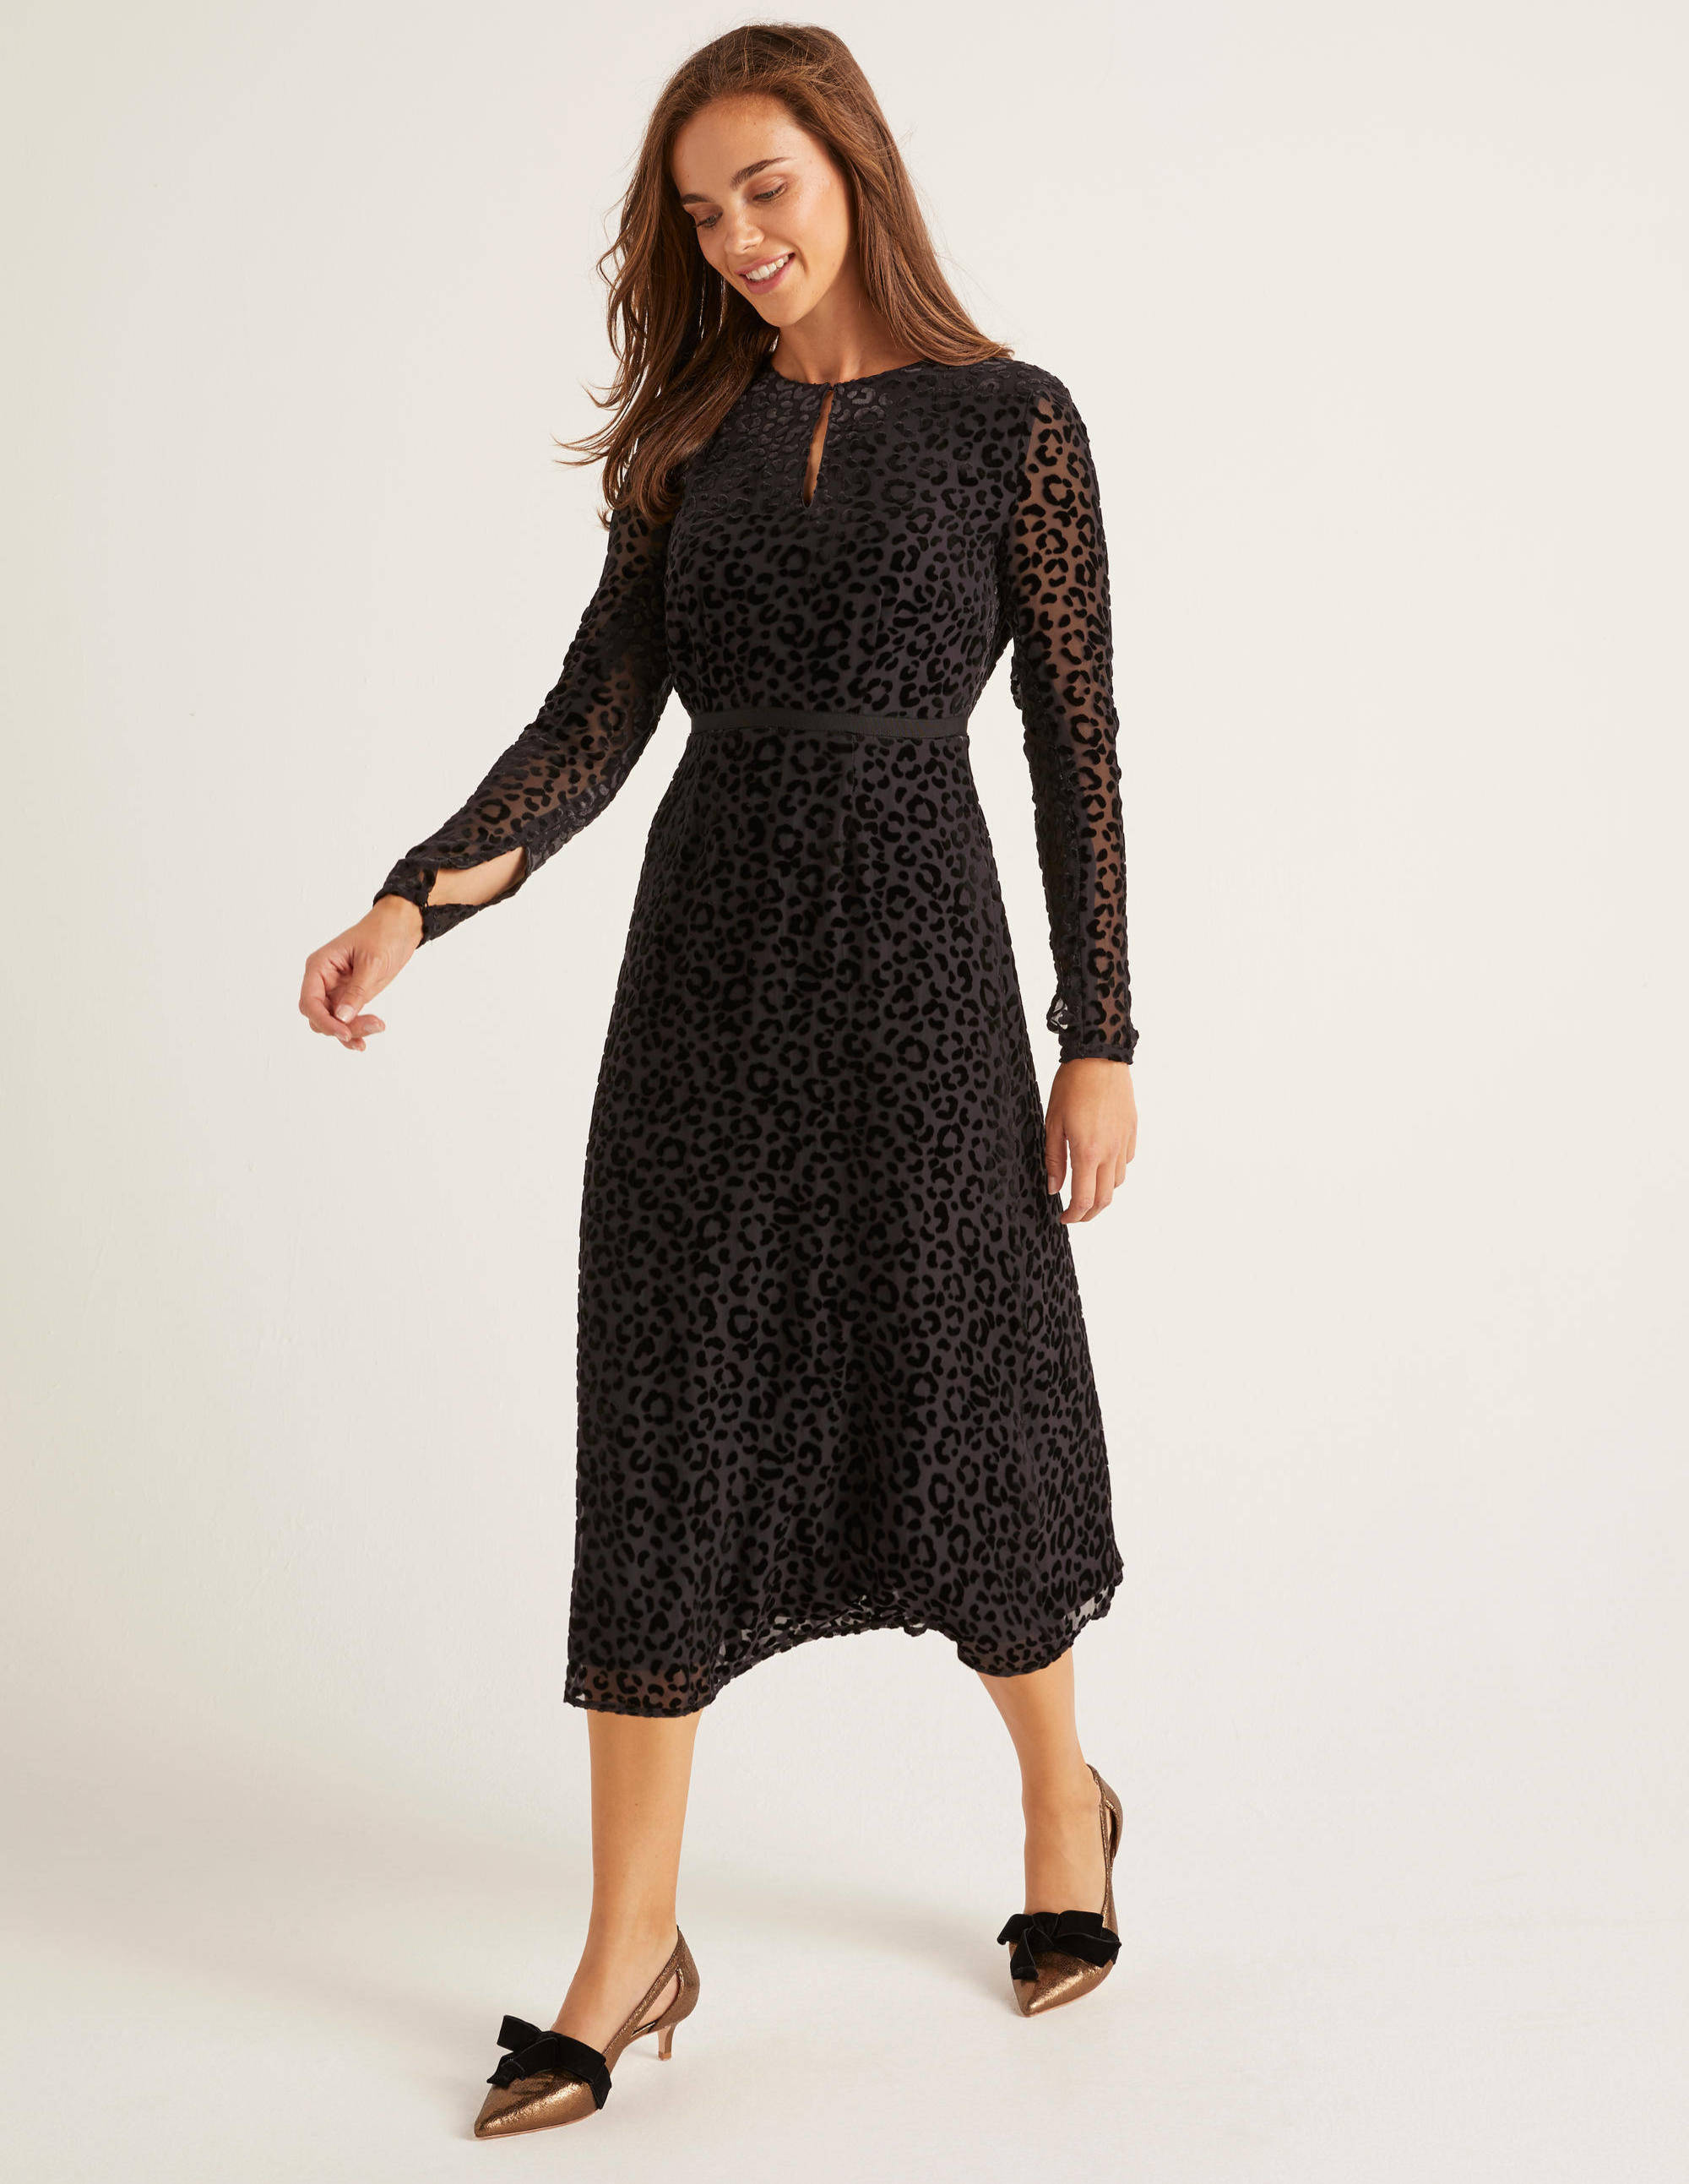 A model wears a dress described as being Crafted from silky viscose and covered in velvety leopard print, this on-trend midi dress is a statement staple.